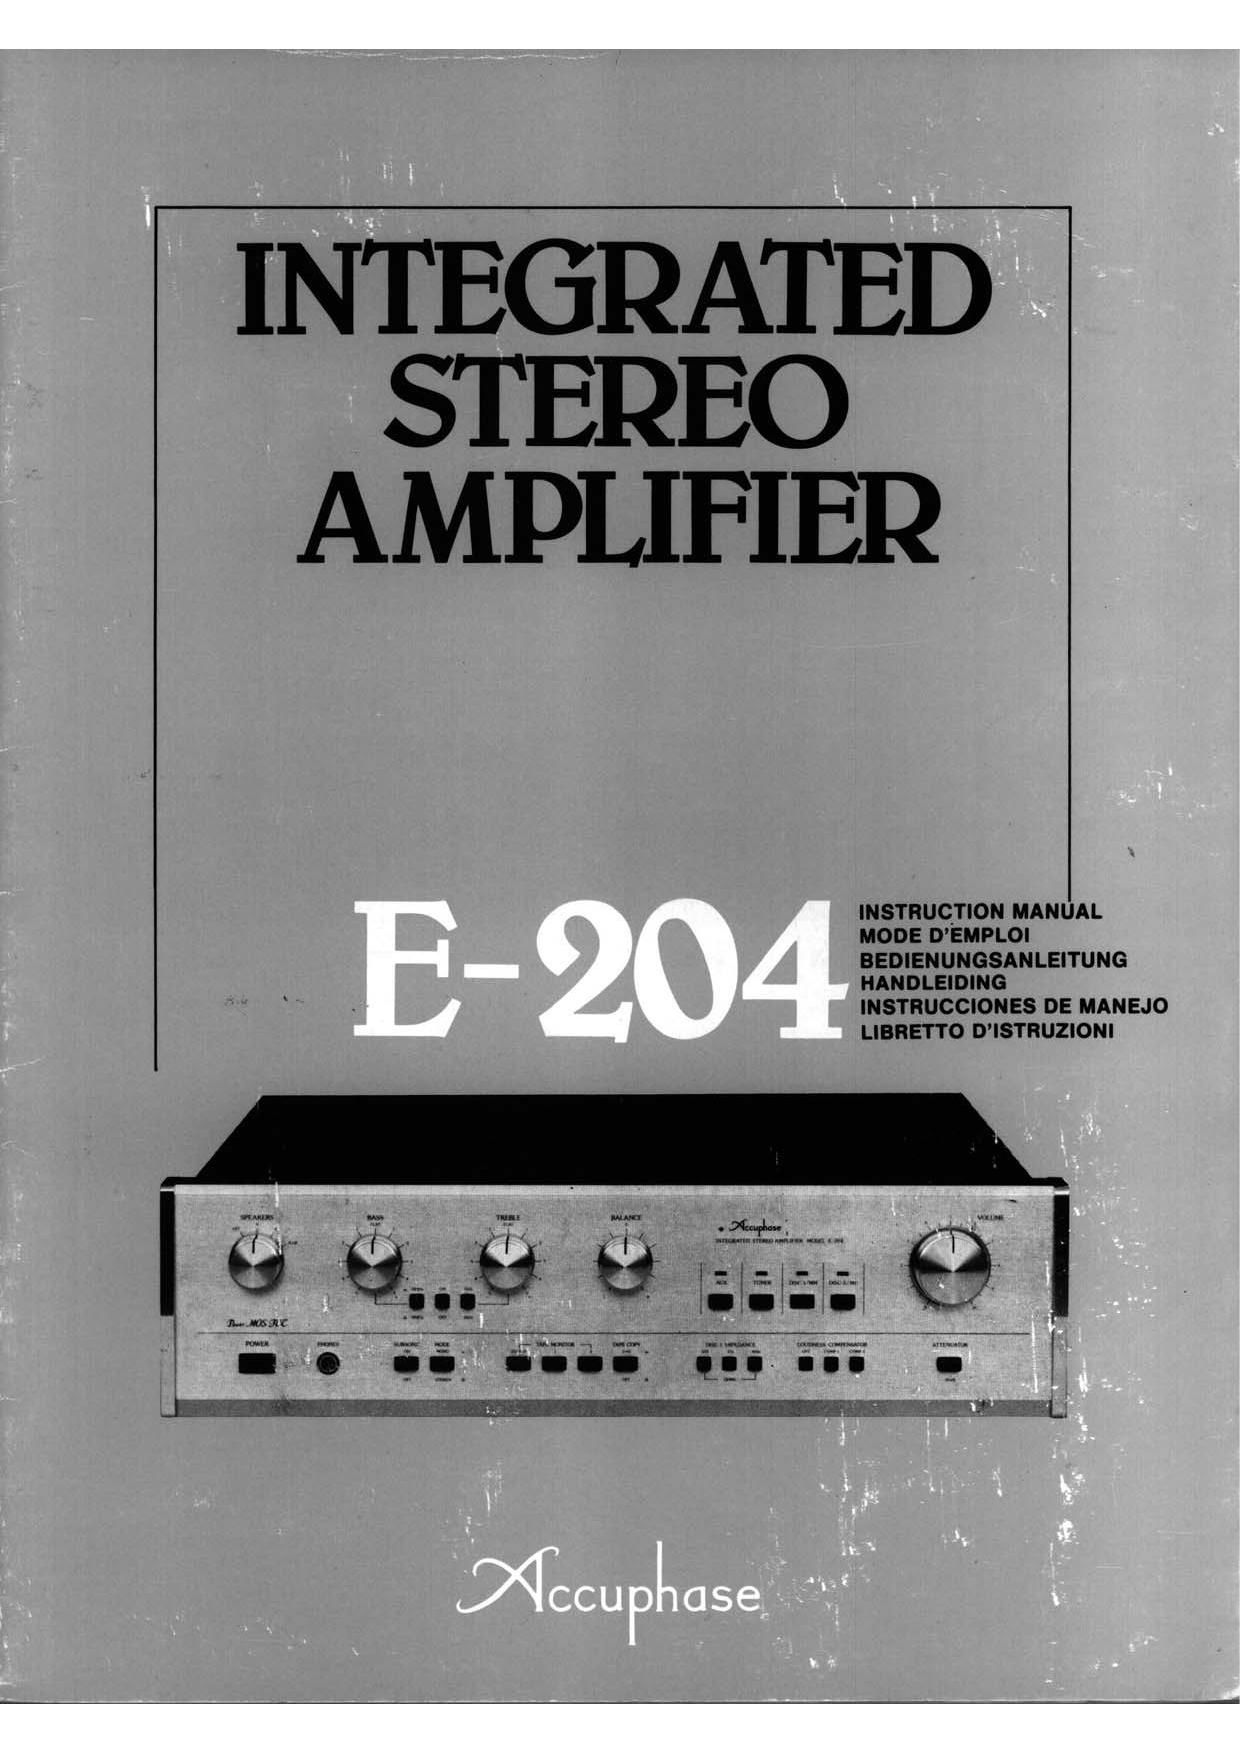 Accuphase E 204 Owners Manual